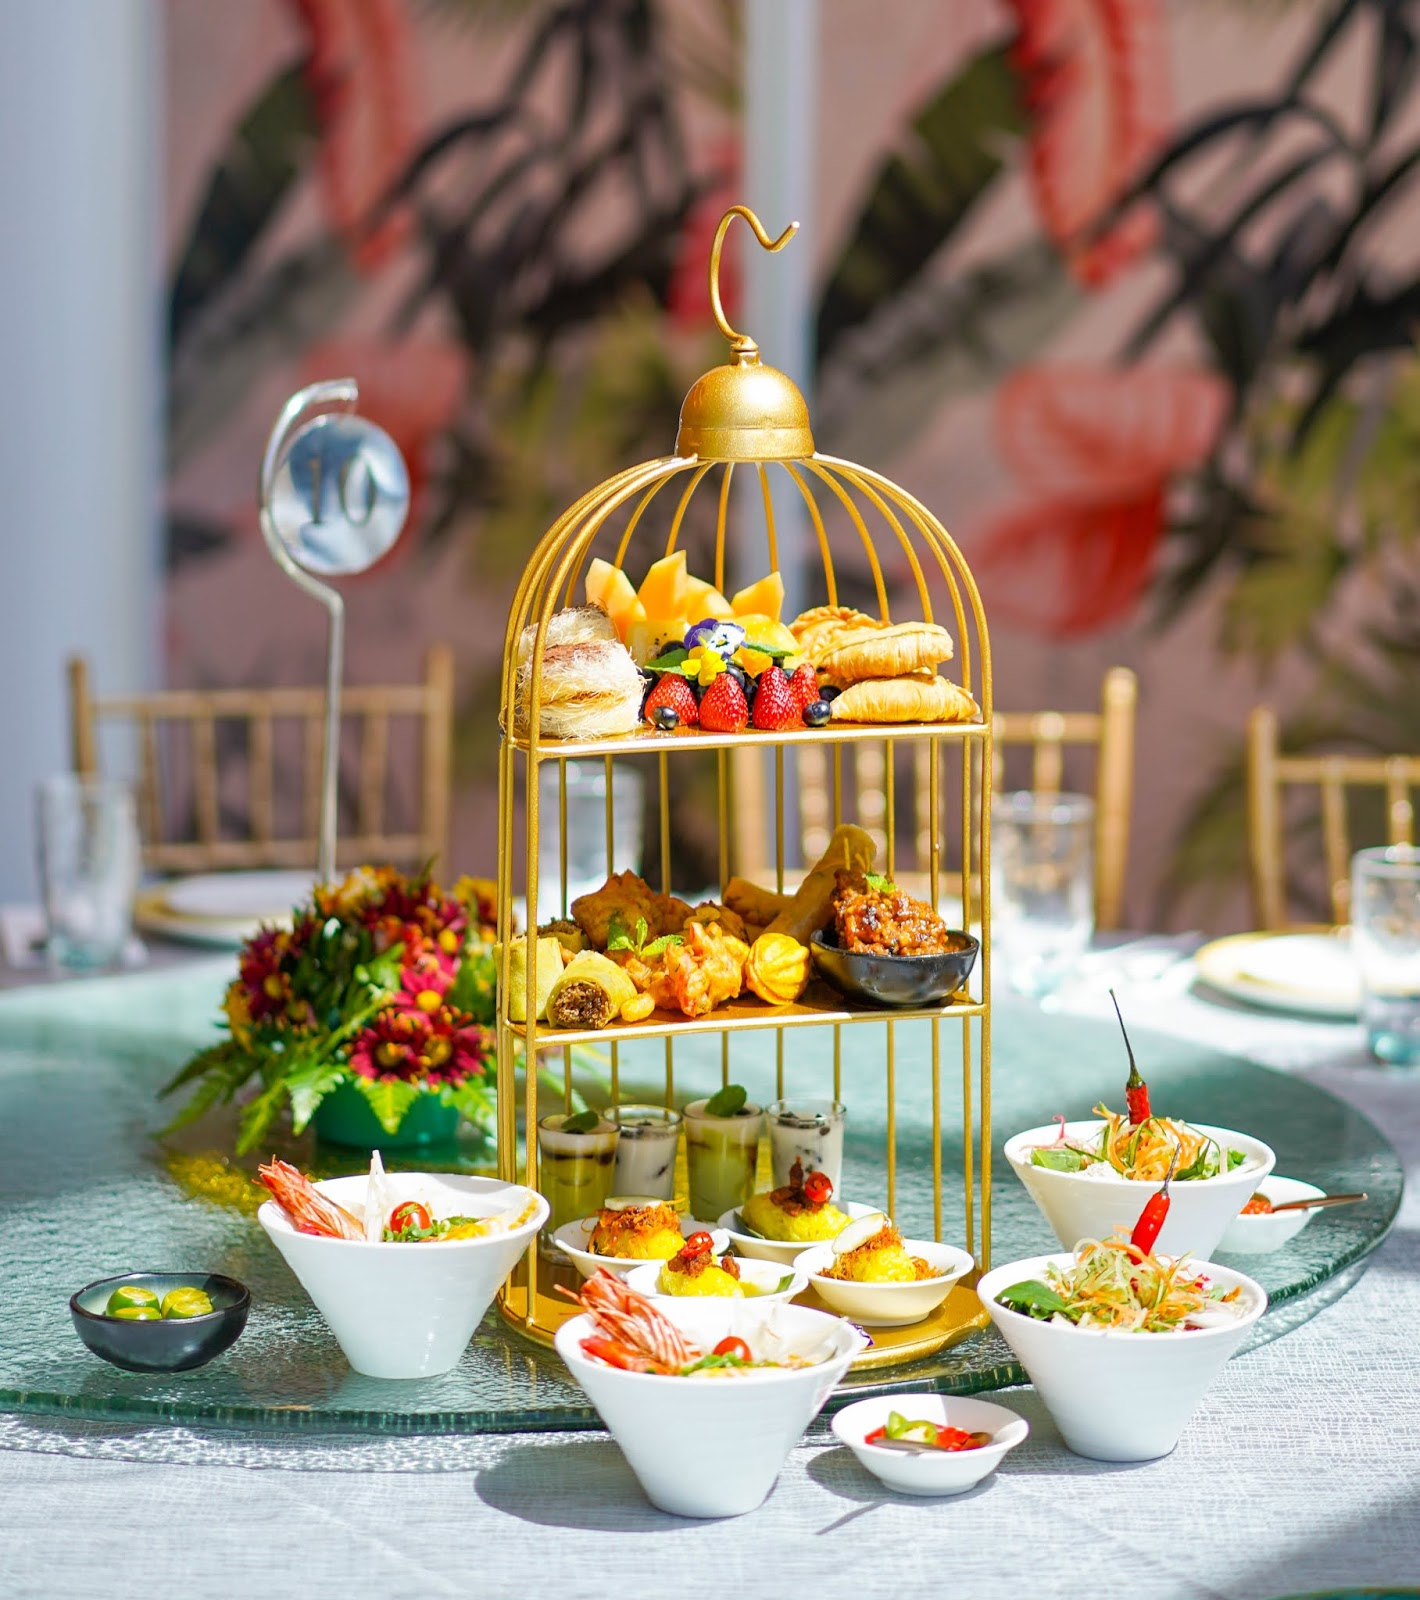 de.wan 1958 by chef wan: high tea set & malaysian tea delights menu